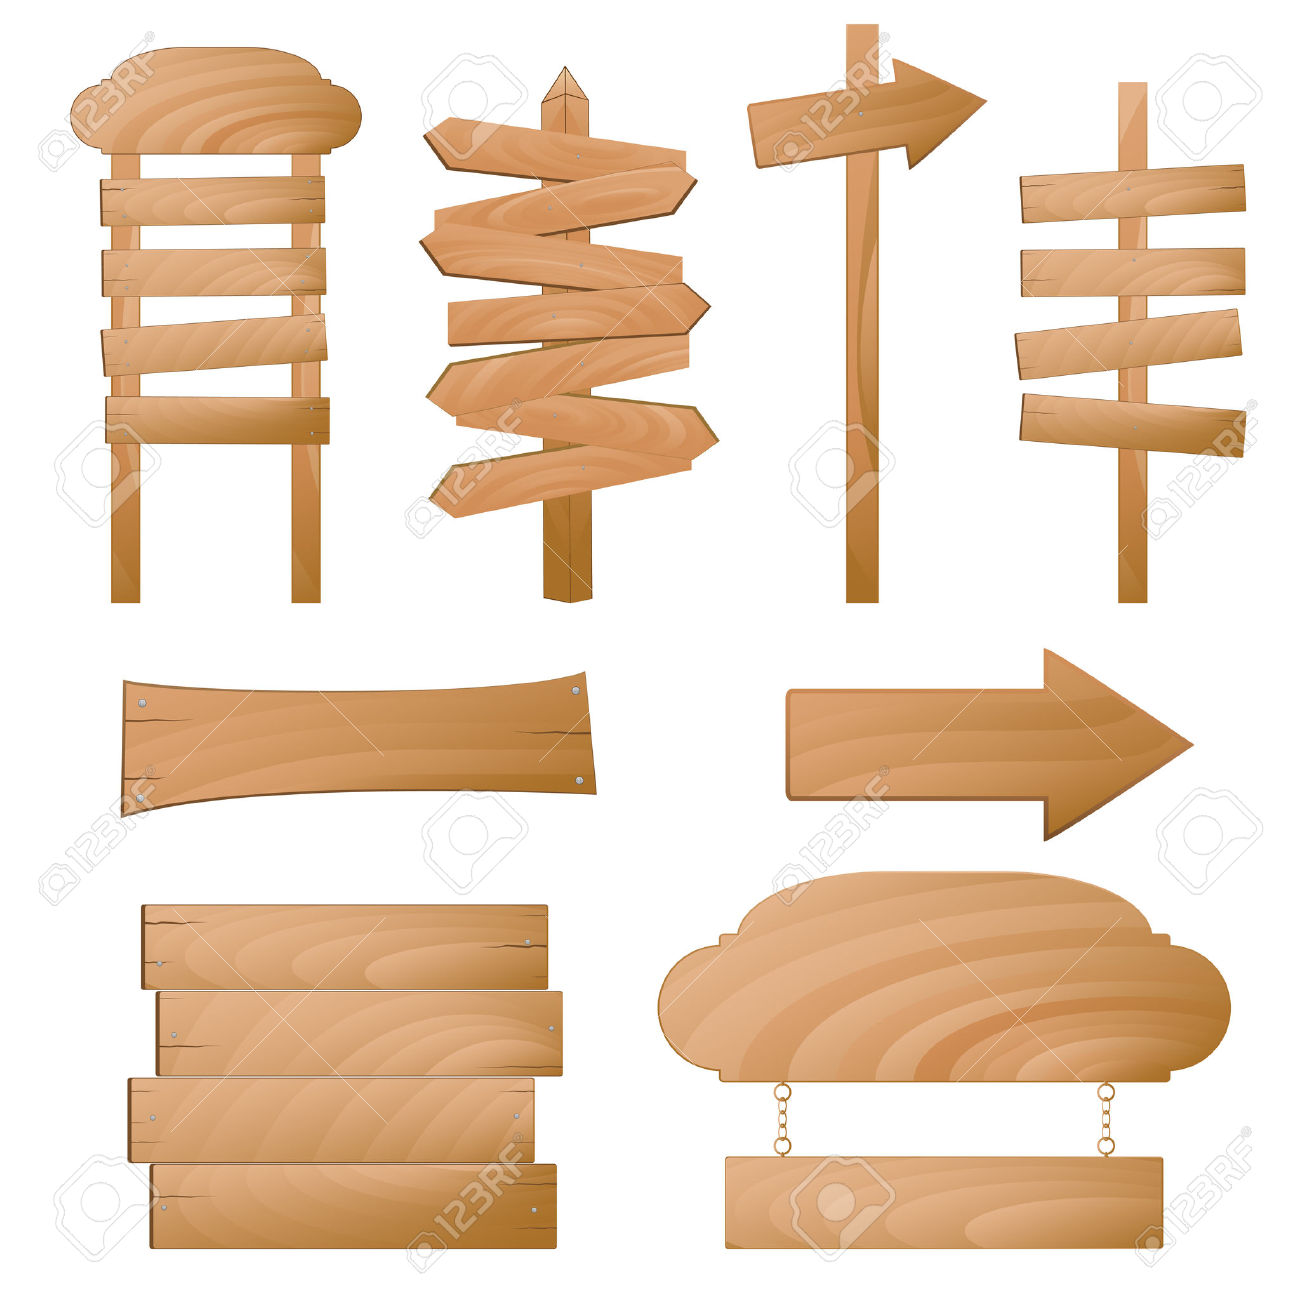 Wooden Signs Royalty Free Cliparts, Vectors, And Stock.